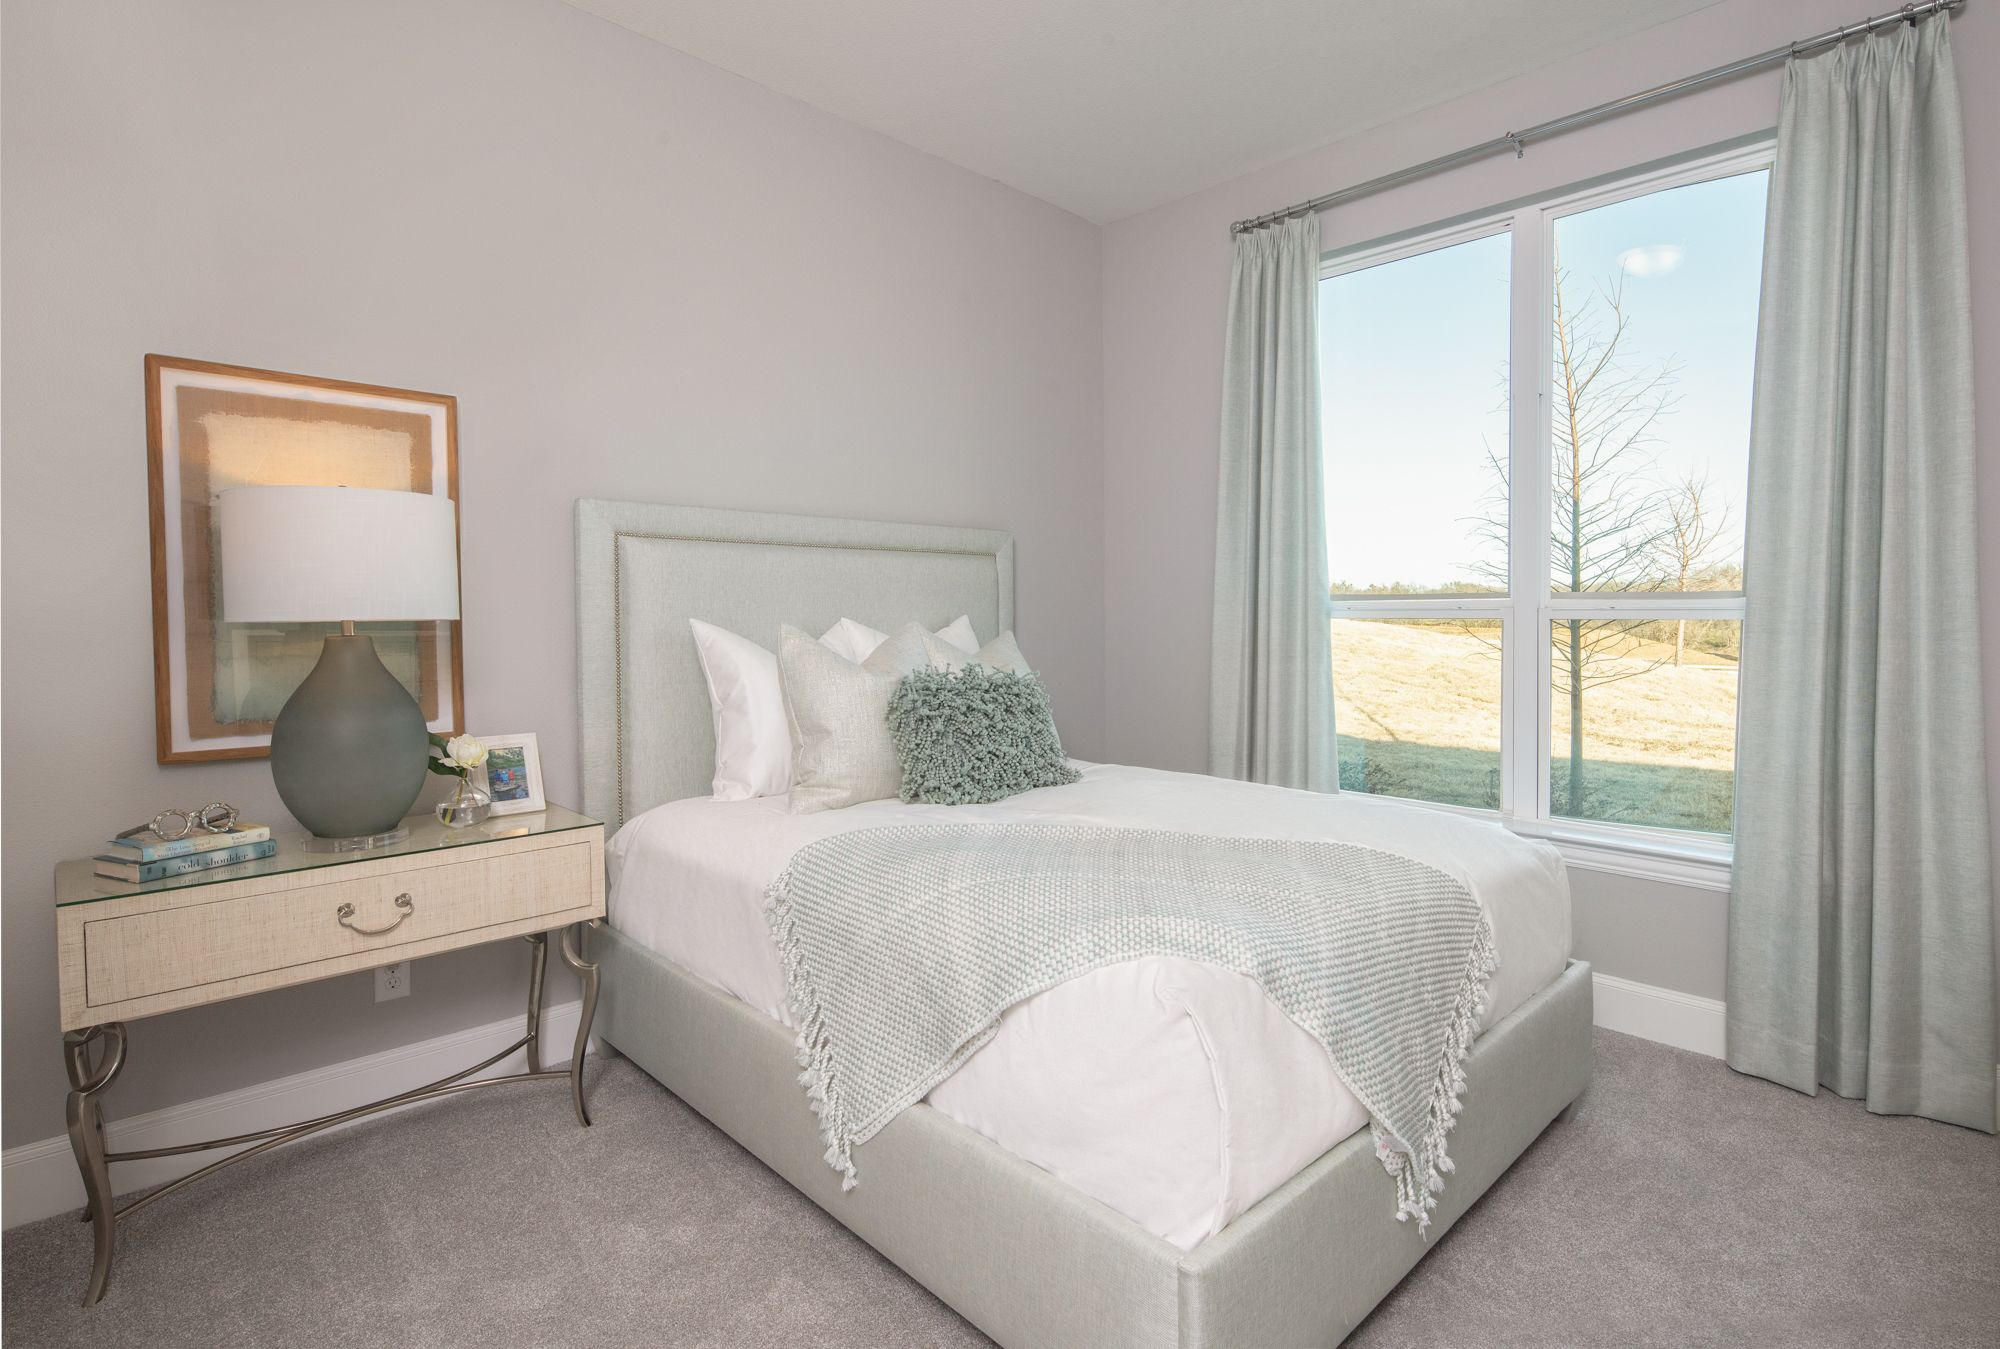 Bedroom featured in the B807 By BelclaireHomes in Dallas, TX